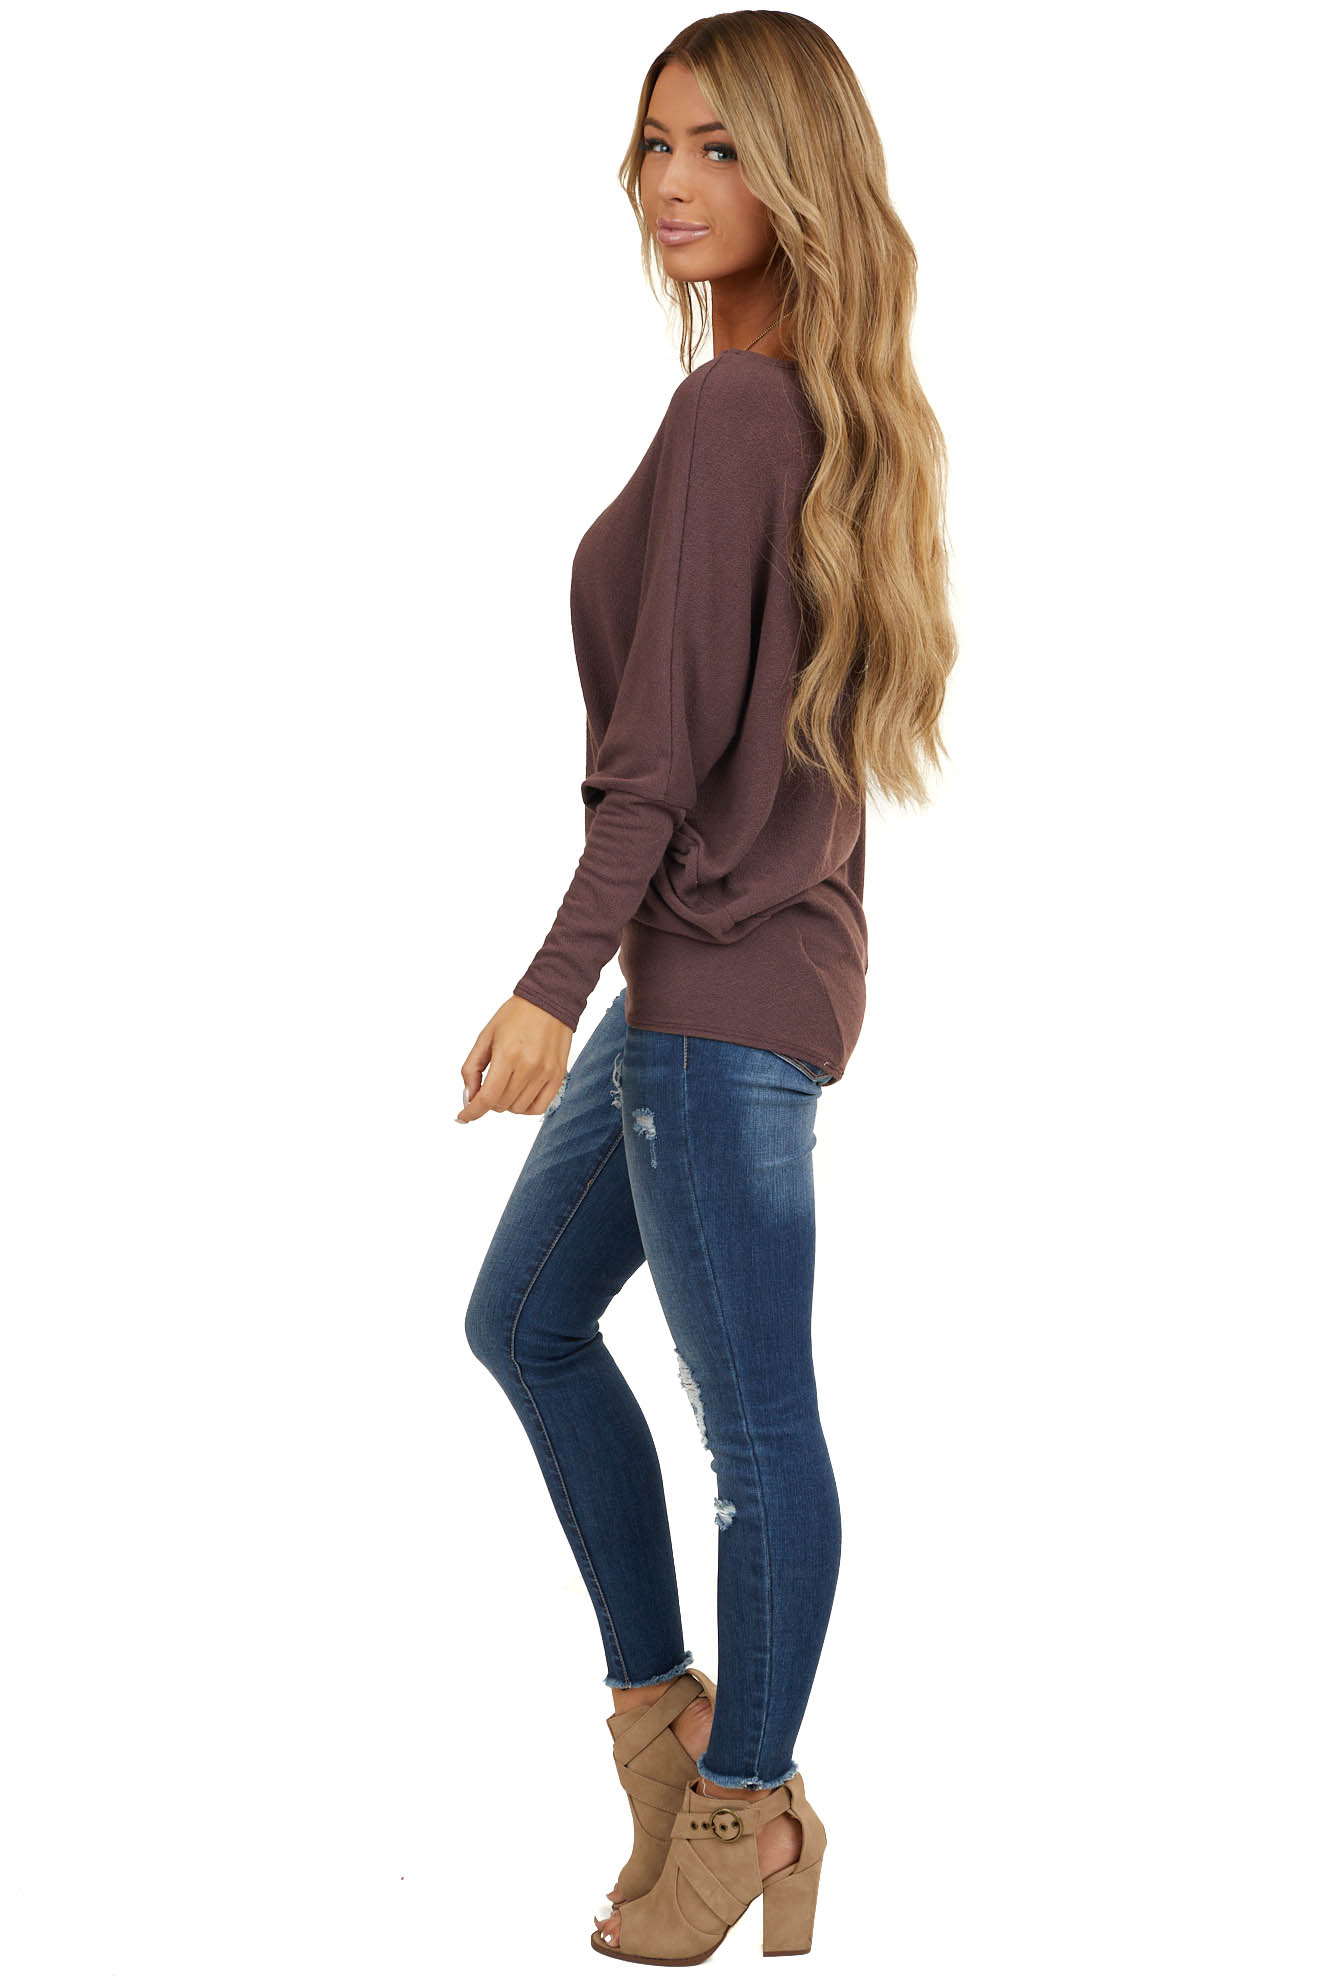 Raisin Round Neck Knit Top with Long Dolman Sleeves